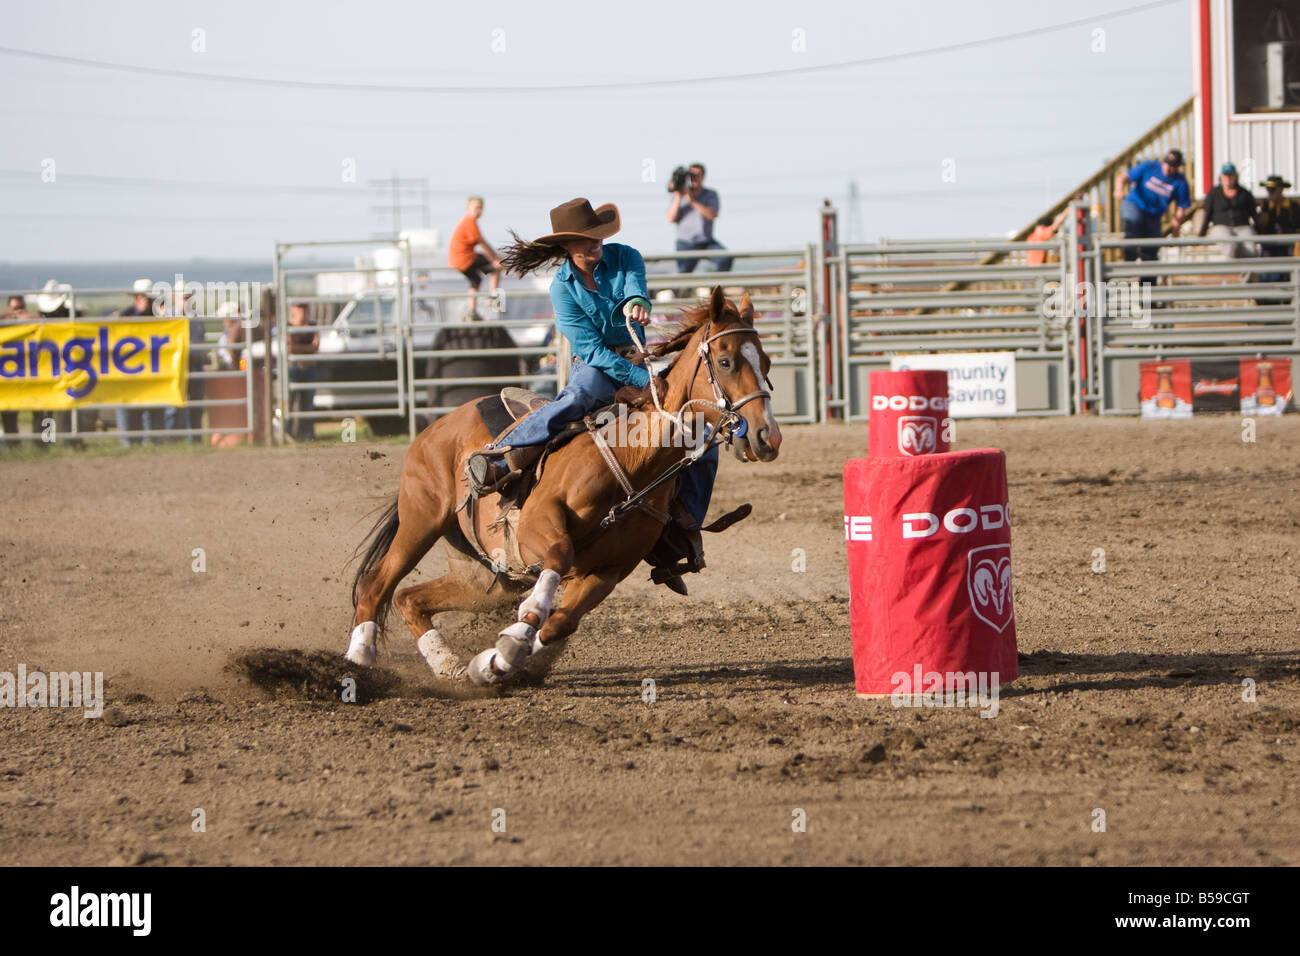 c960d49e8f1c5 A cowgirl barrel racing around a red barrel on a chestnut horse at a rodeo.